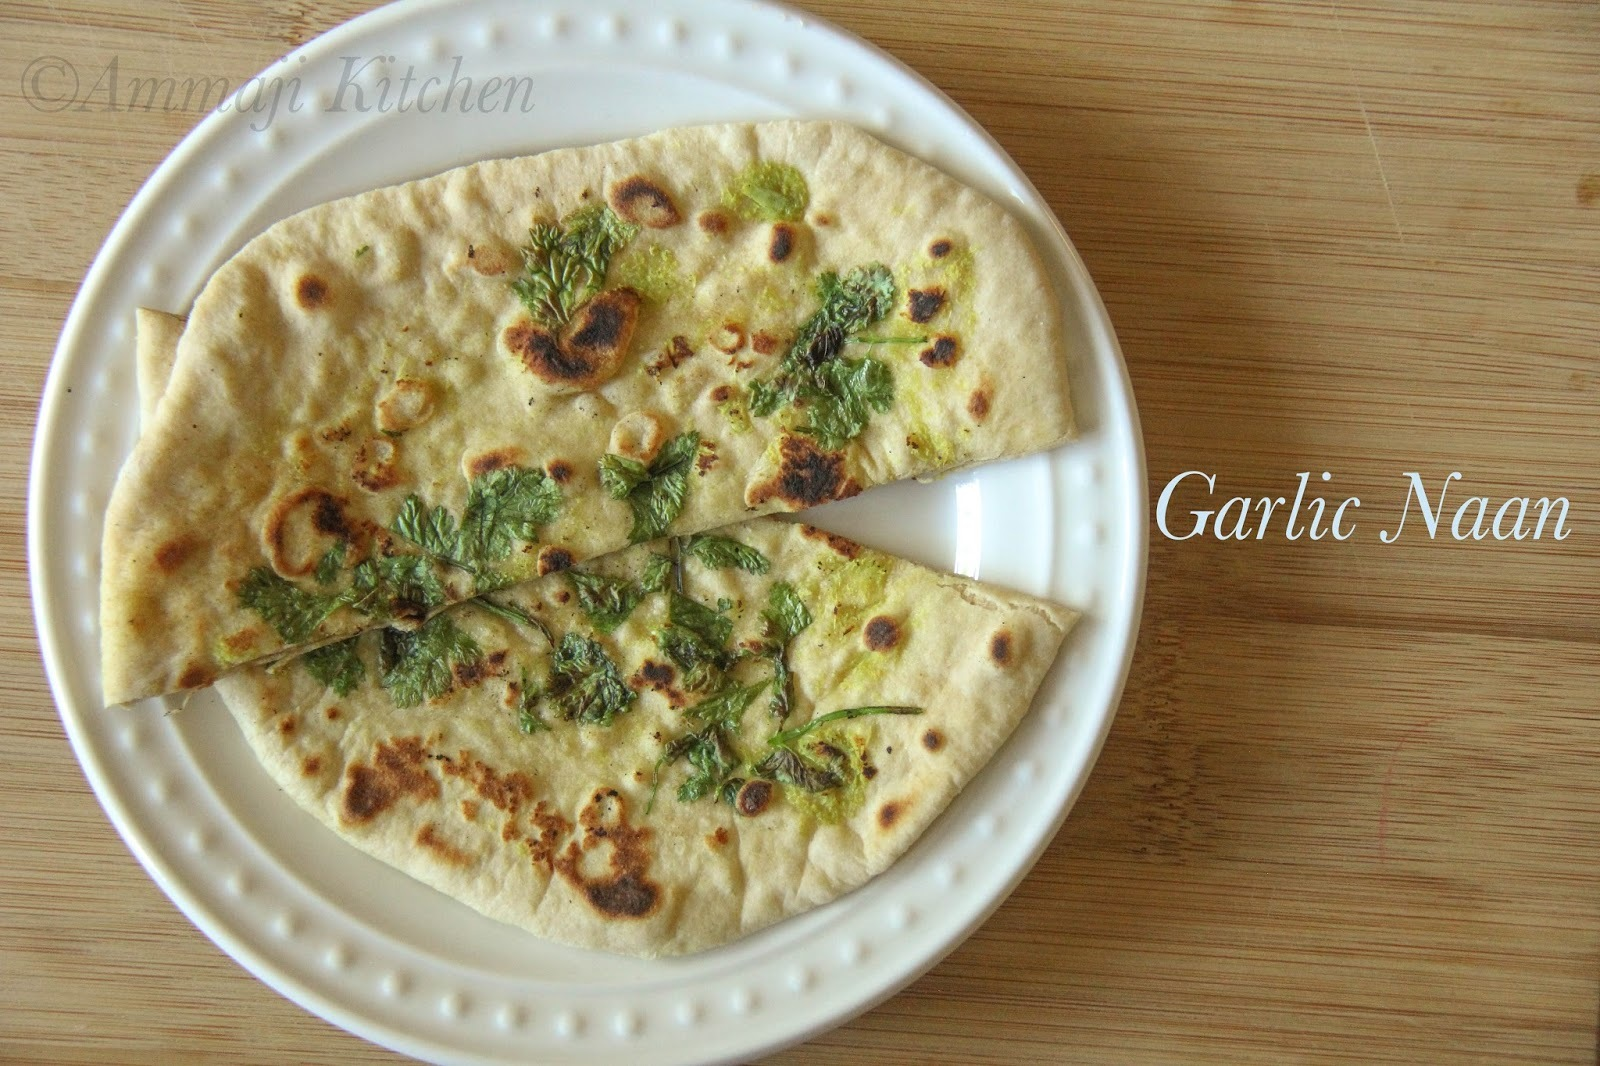 Garlic Naan With Out Yeast